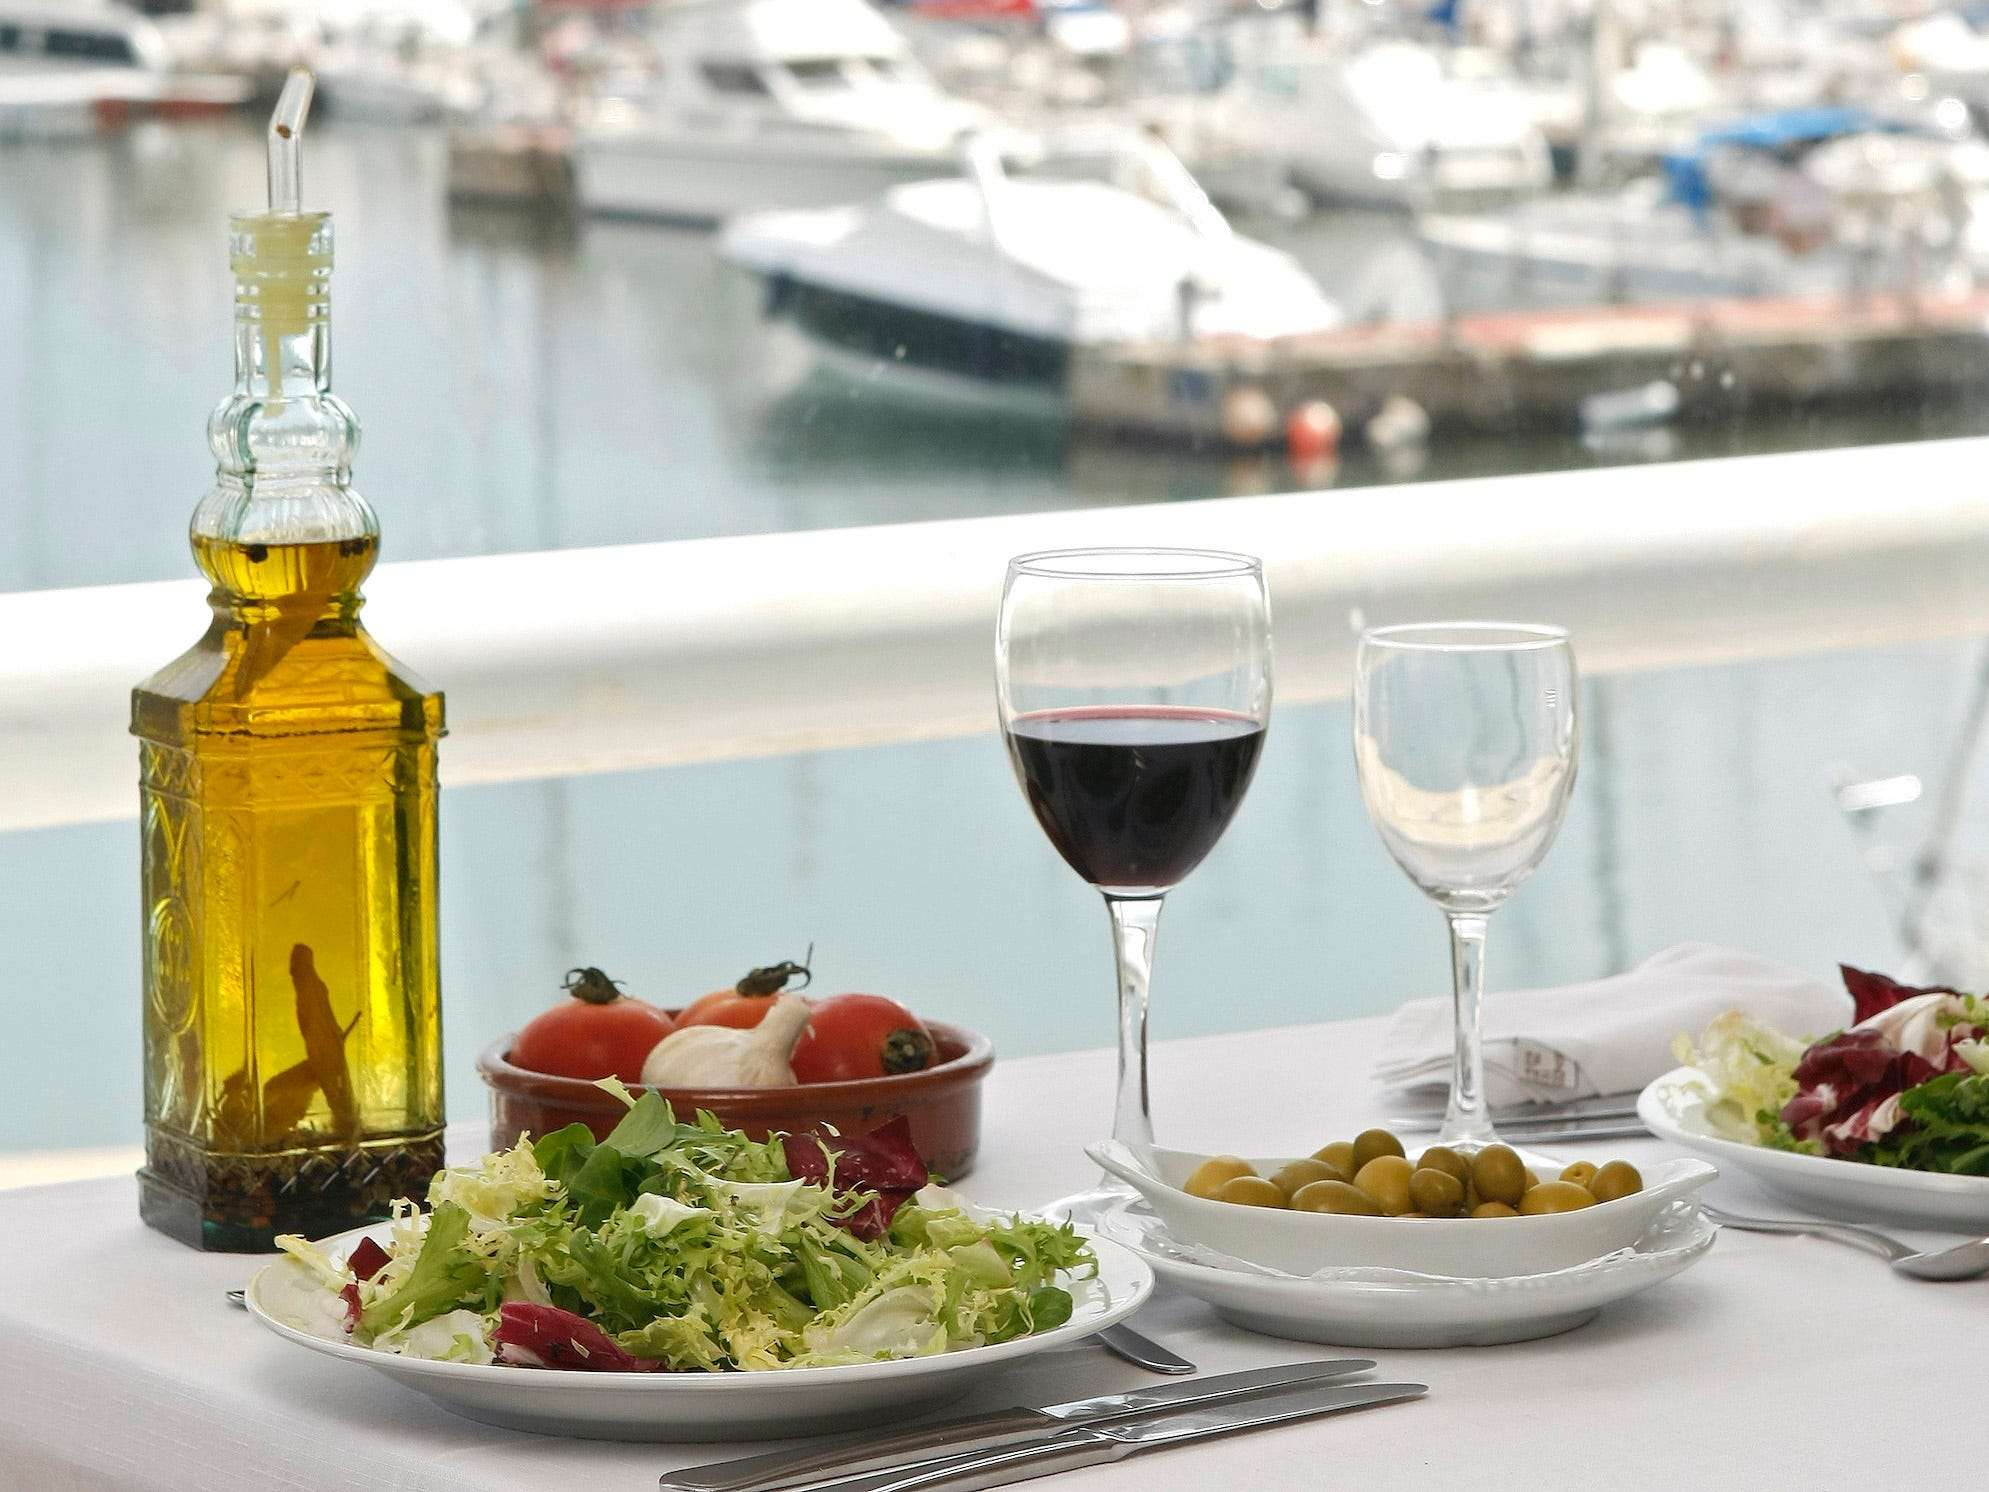 The Mediterranean diet could lower the risk of diabetes for overweight women, a study found